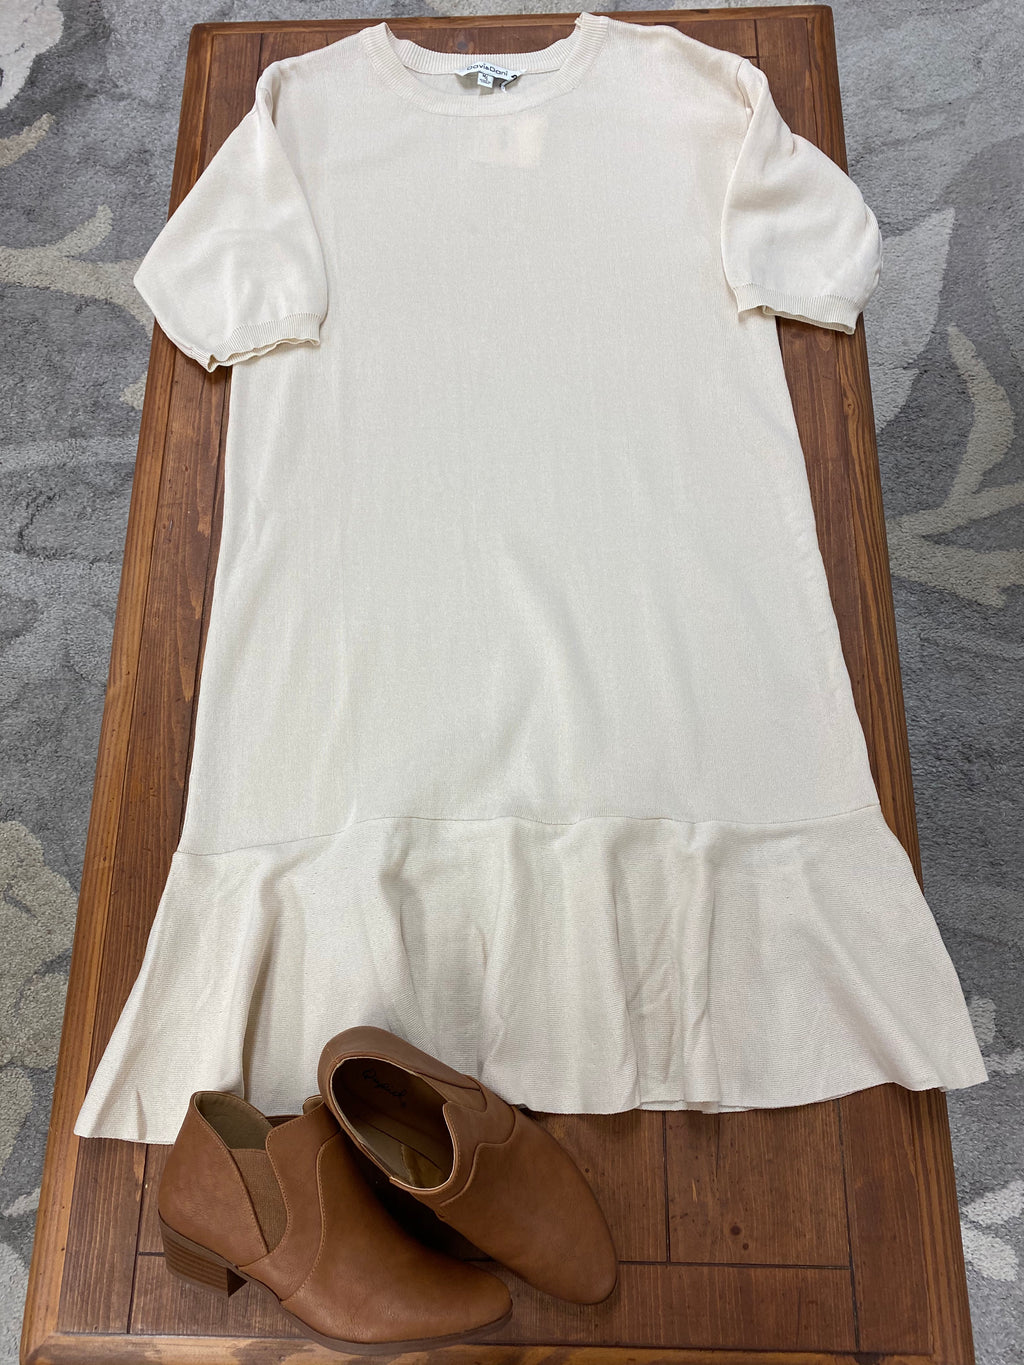 Davi & Dani Dolman Dress-50% OFF - Whitt & Co. Clothing